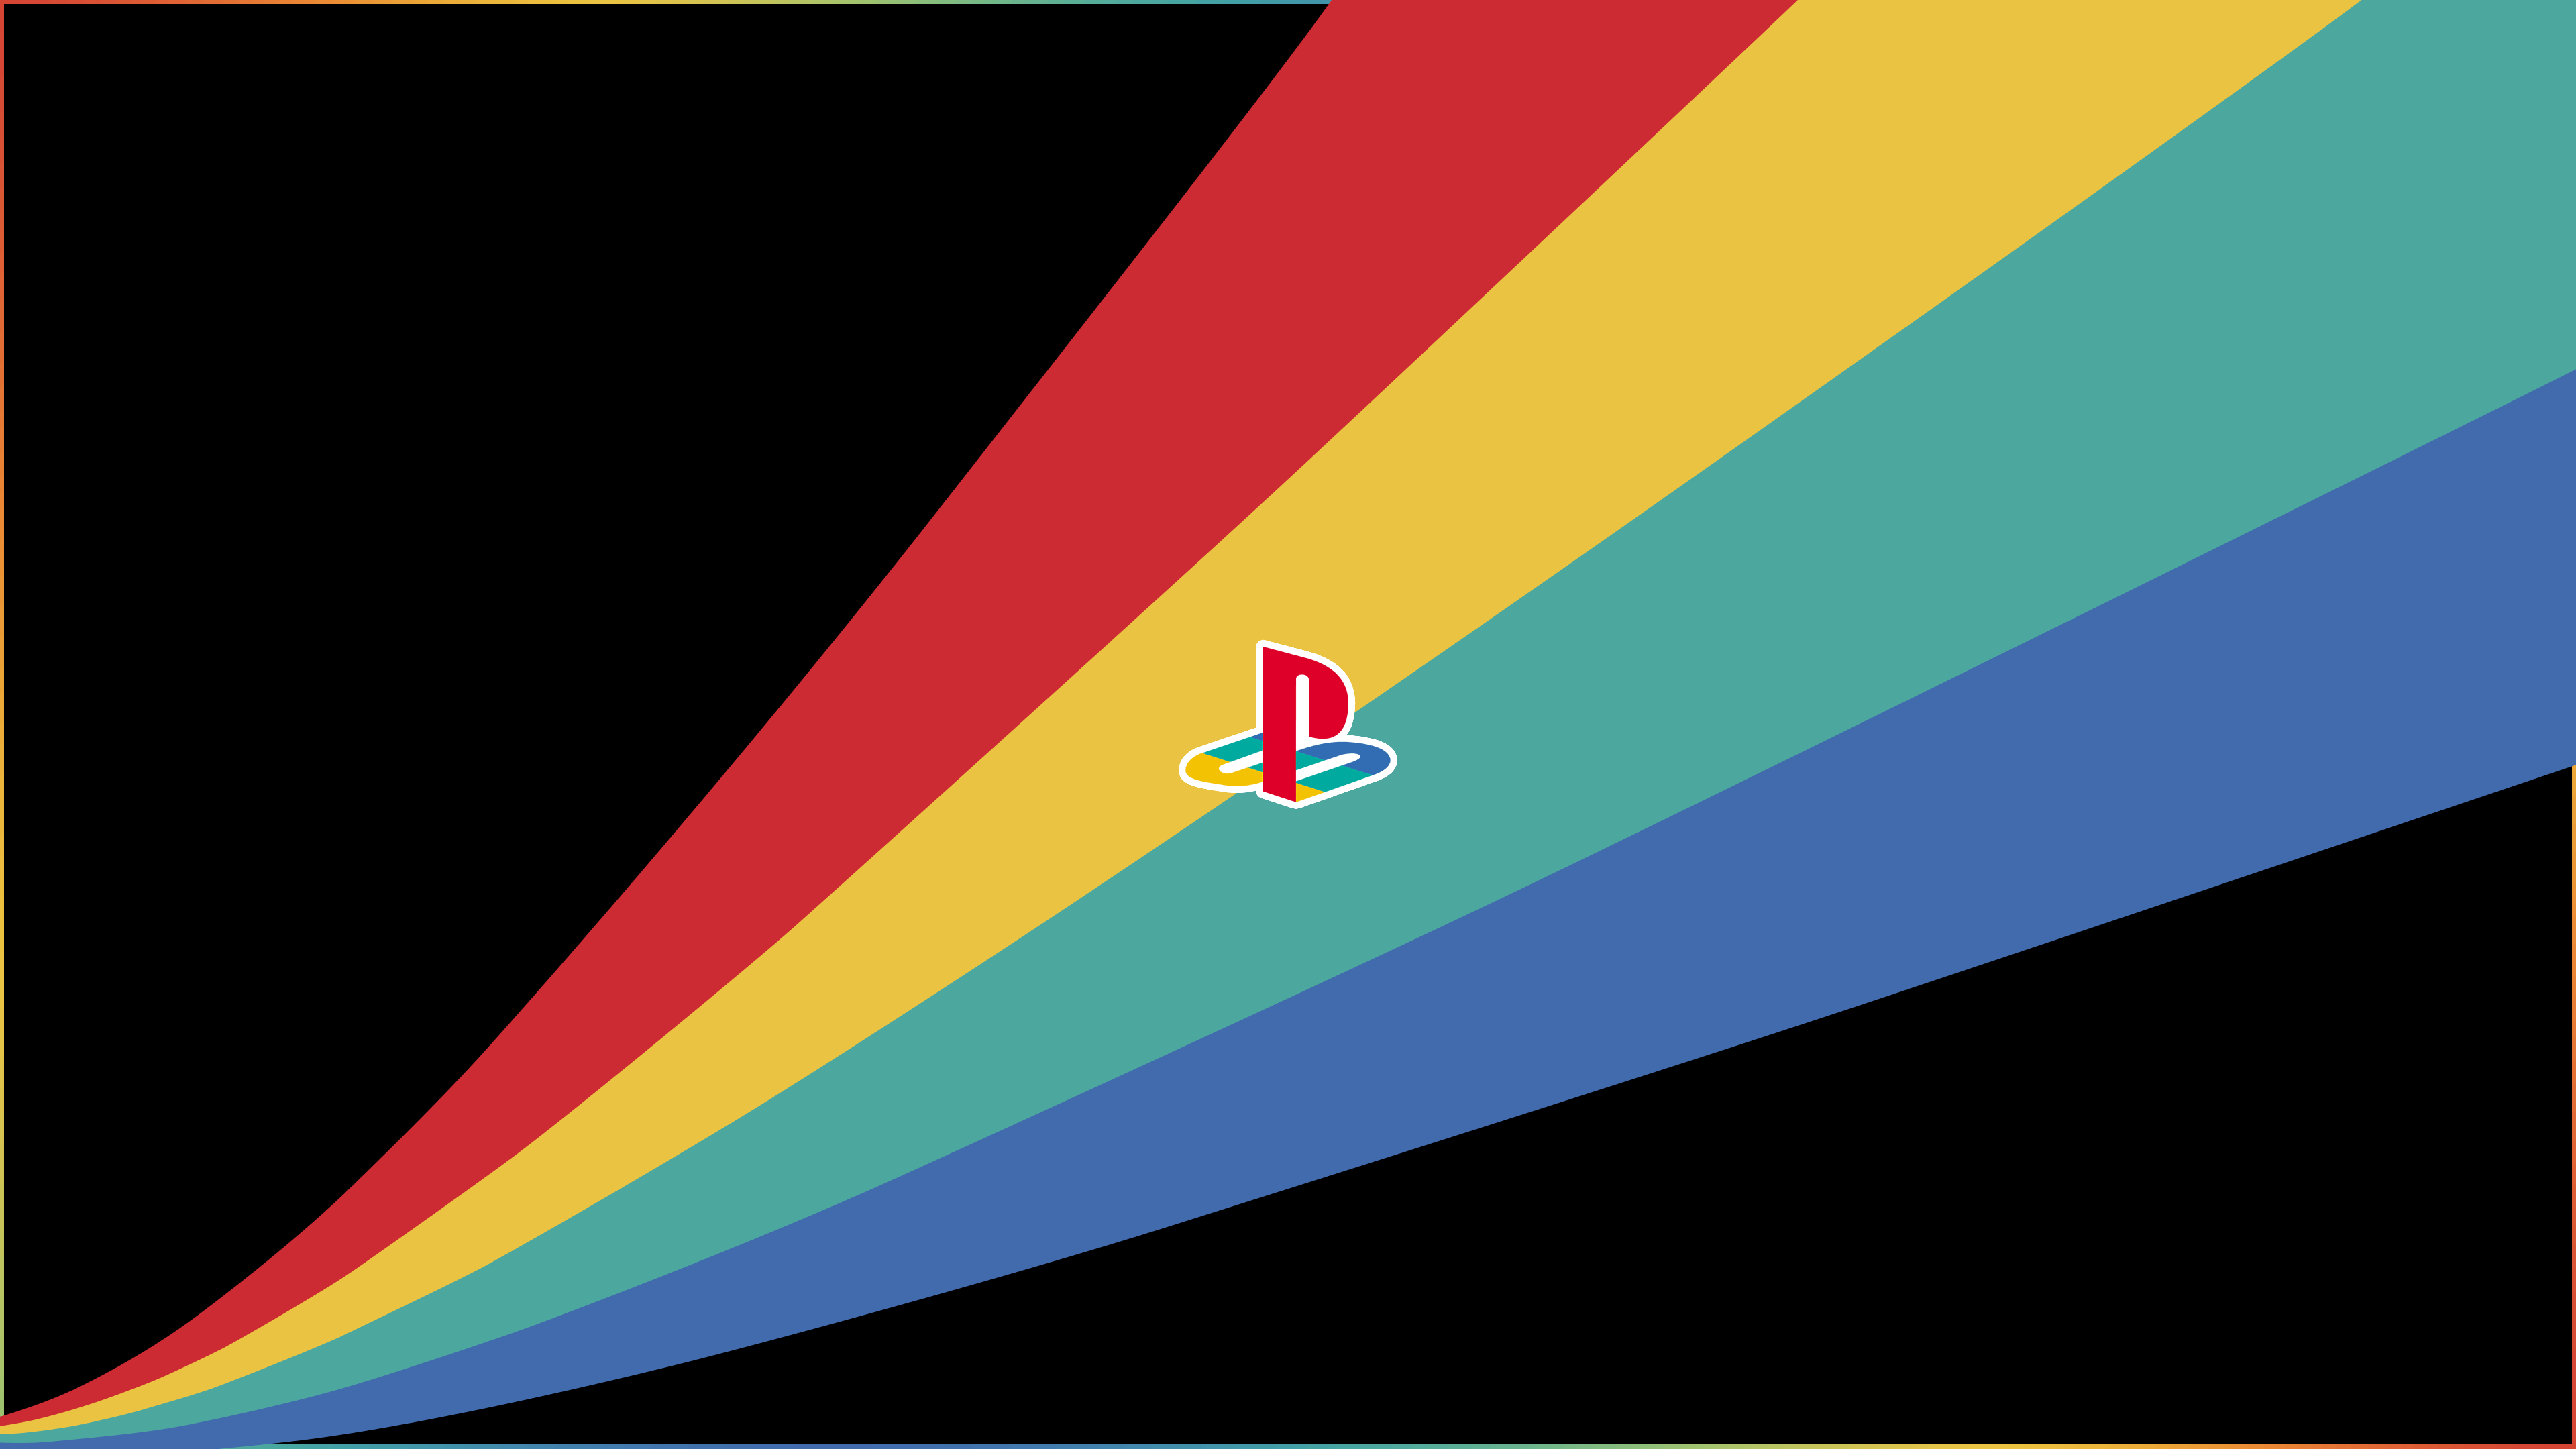 Aesthetic Playstation Wallpapers Wallpaper Cave